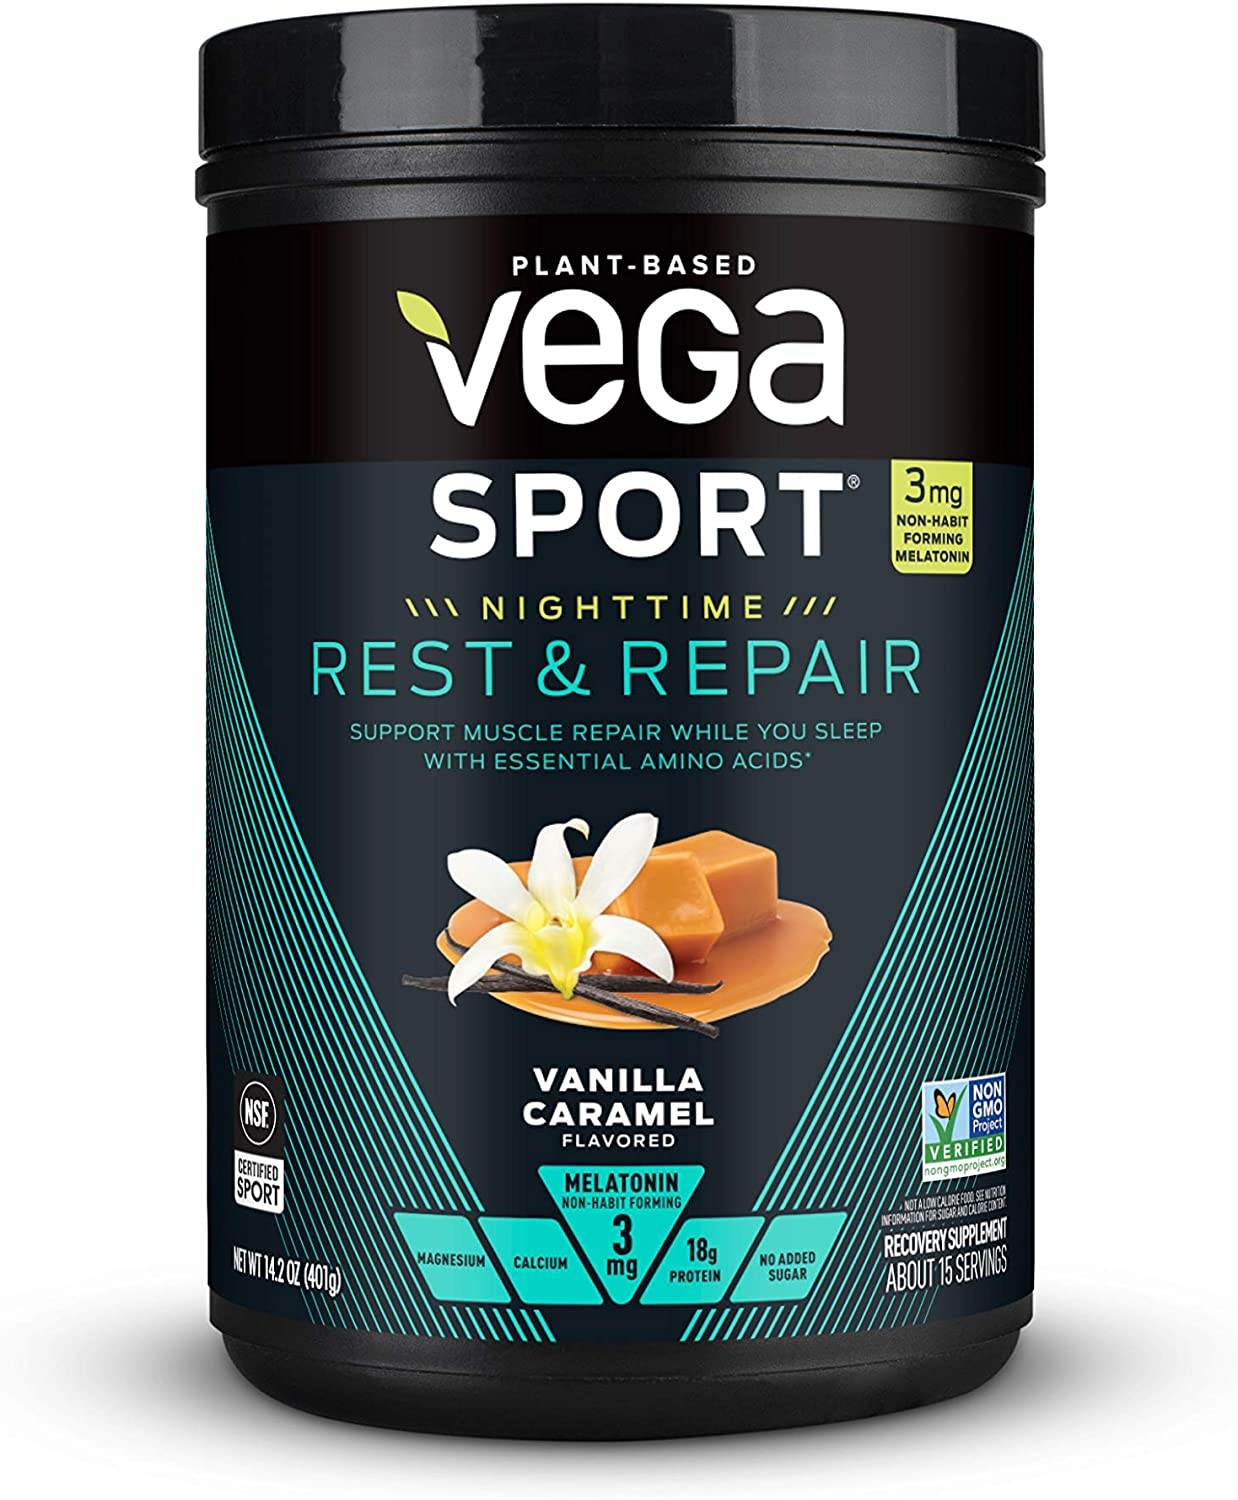 Vega Sport Nighttime Rest & Repair US Vanilla Caramel (15 servings, 14oz) - Vegan Plant-Based Post Workout Fuel with Protein, Melatonin, Magnesium, and Calcium - Non GMO, No Dairy, No Soy, Gluten Free